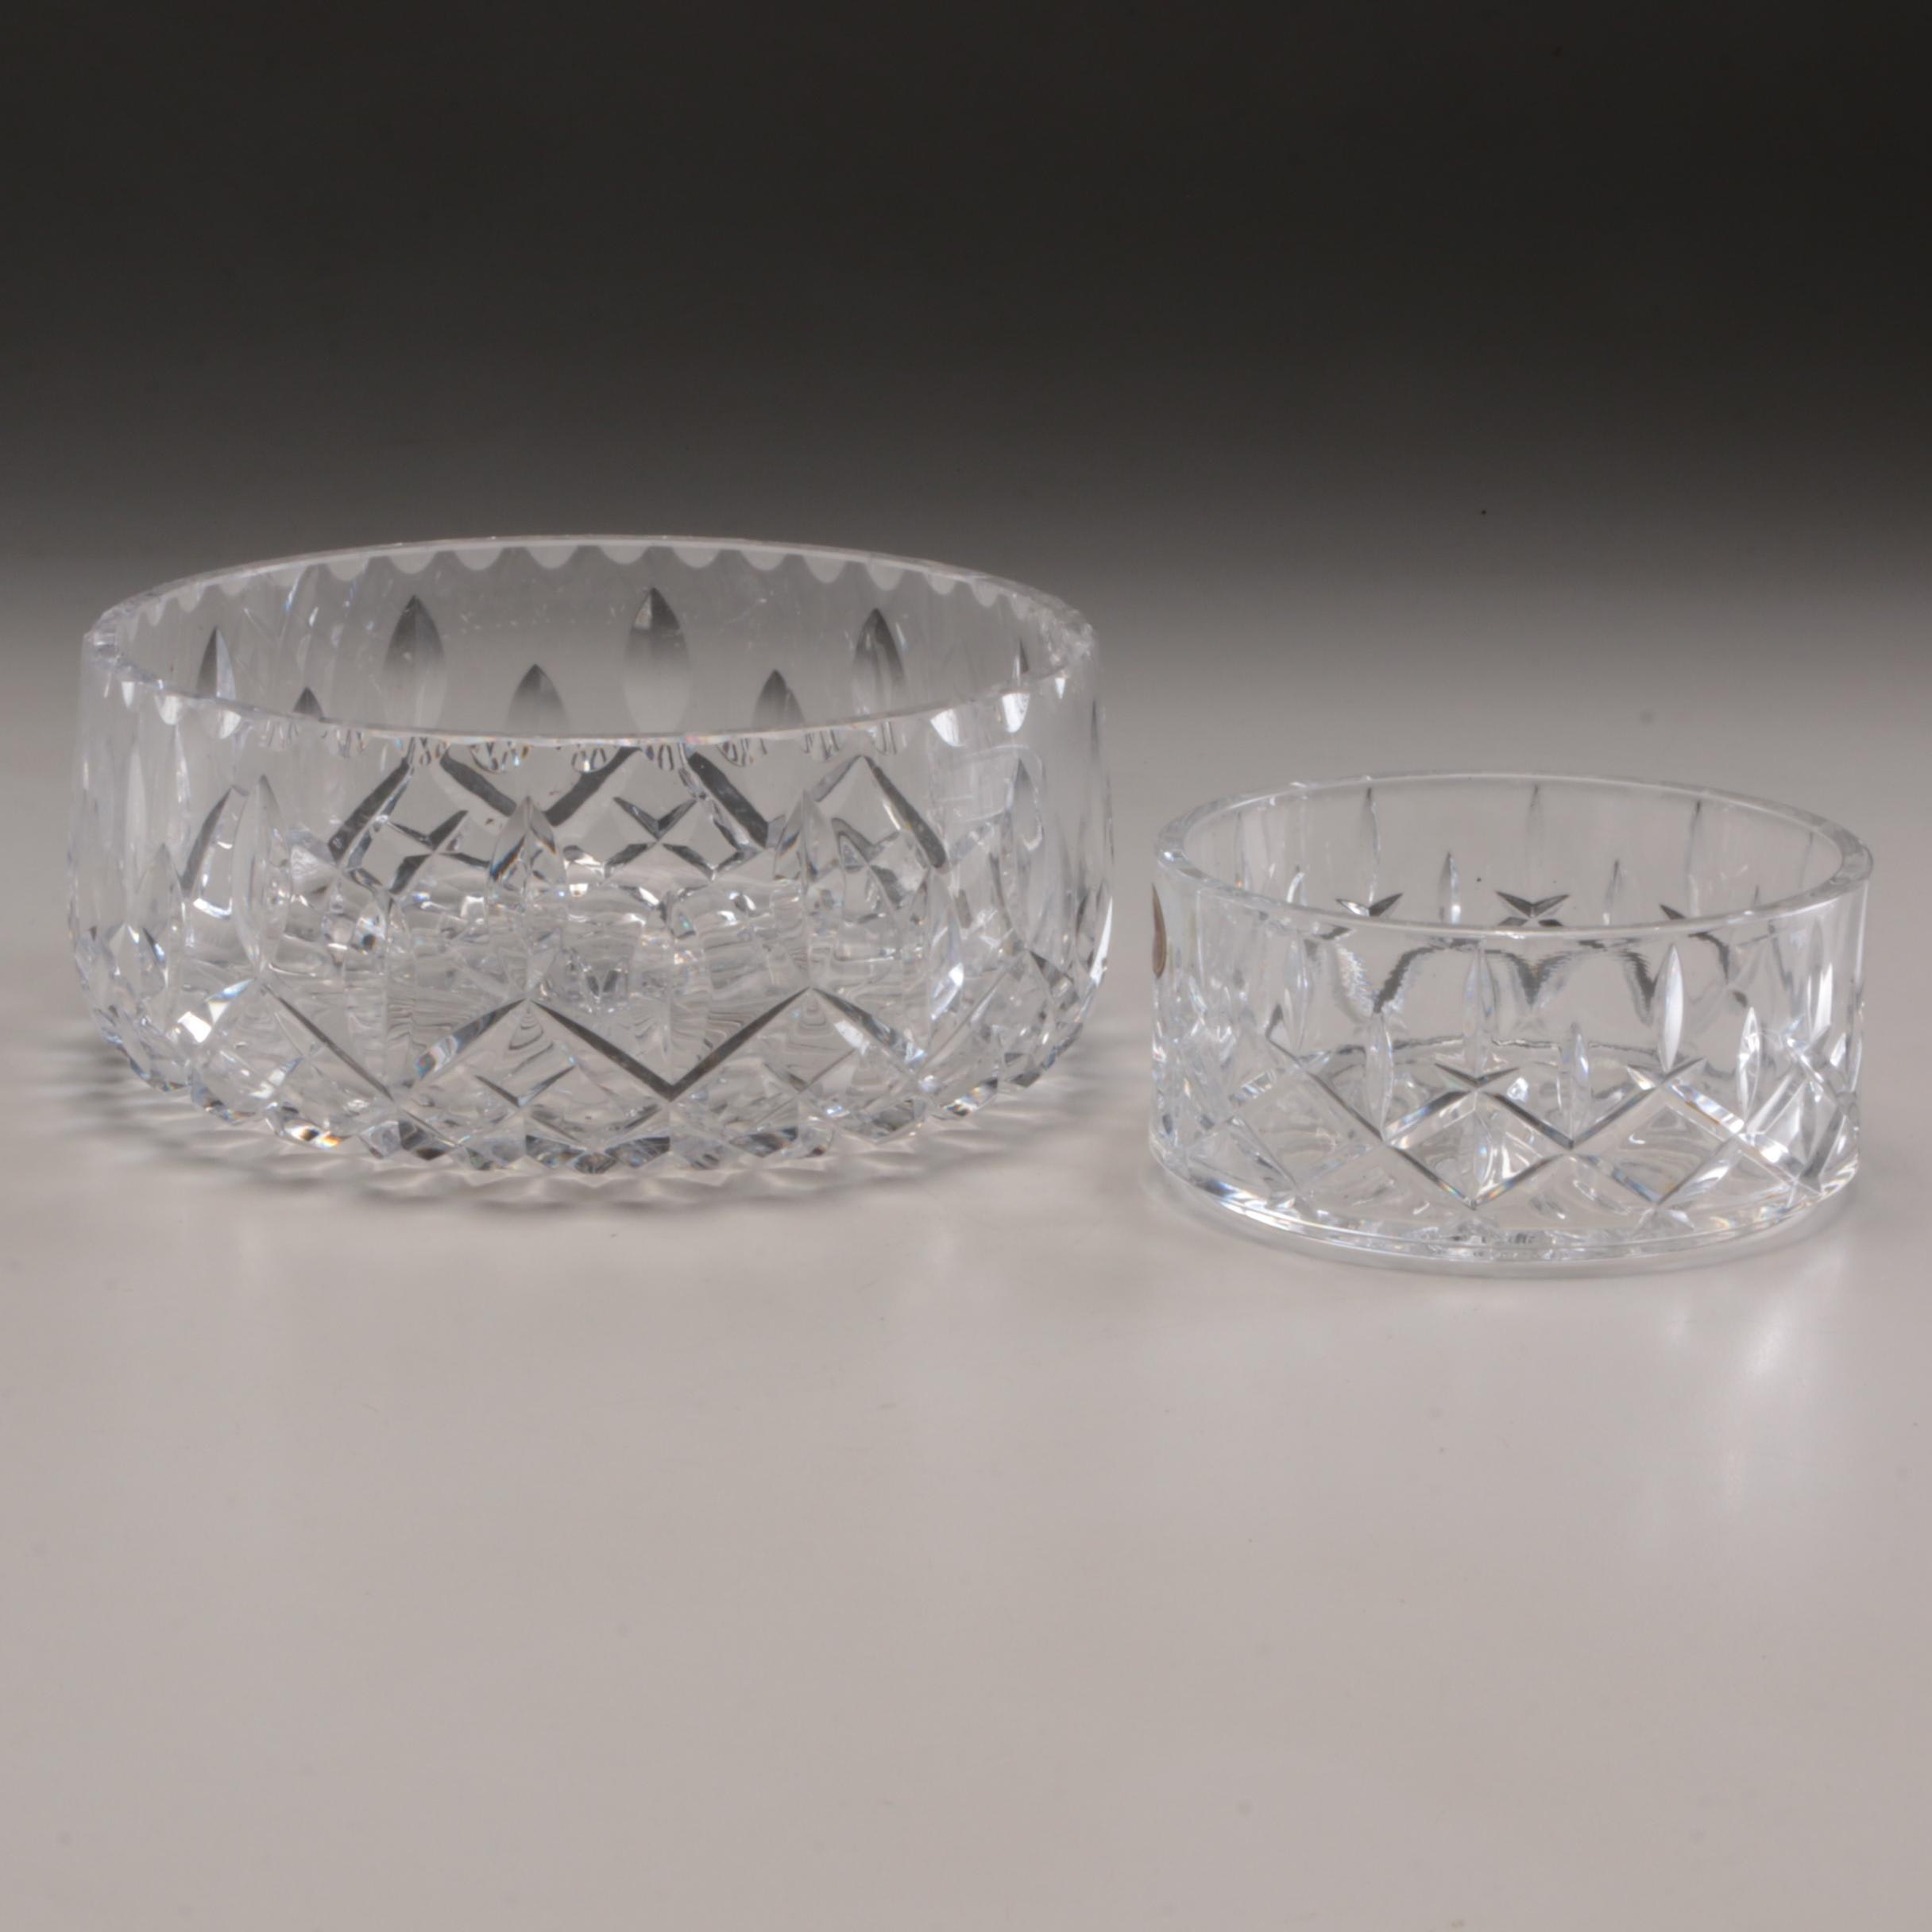 Gorham Crystal Candy Bowl and Crystal Centerpiece